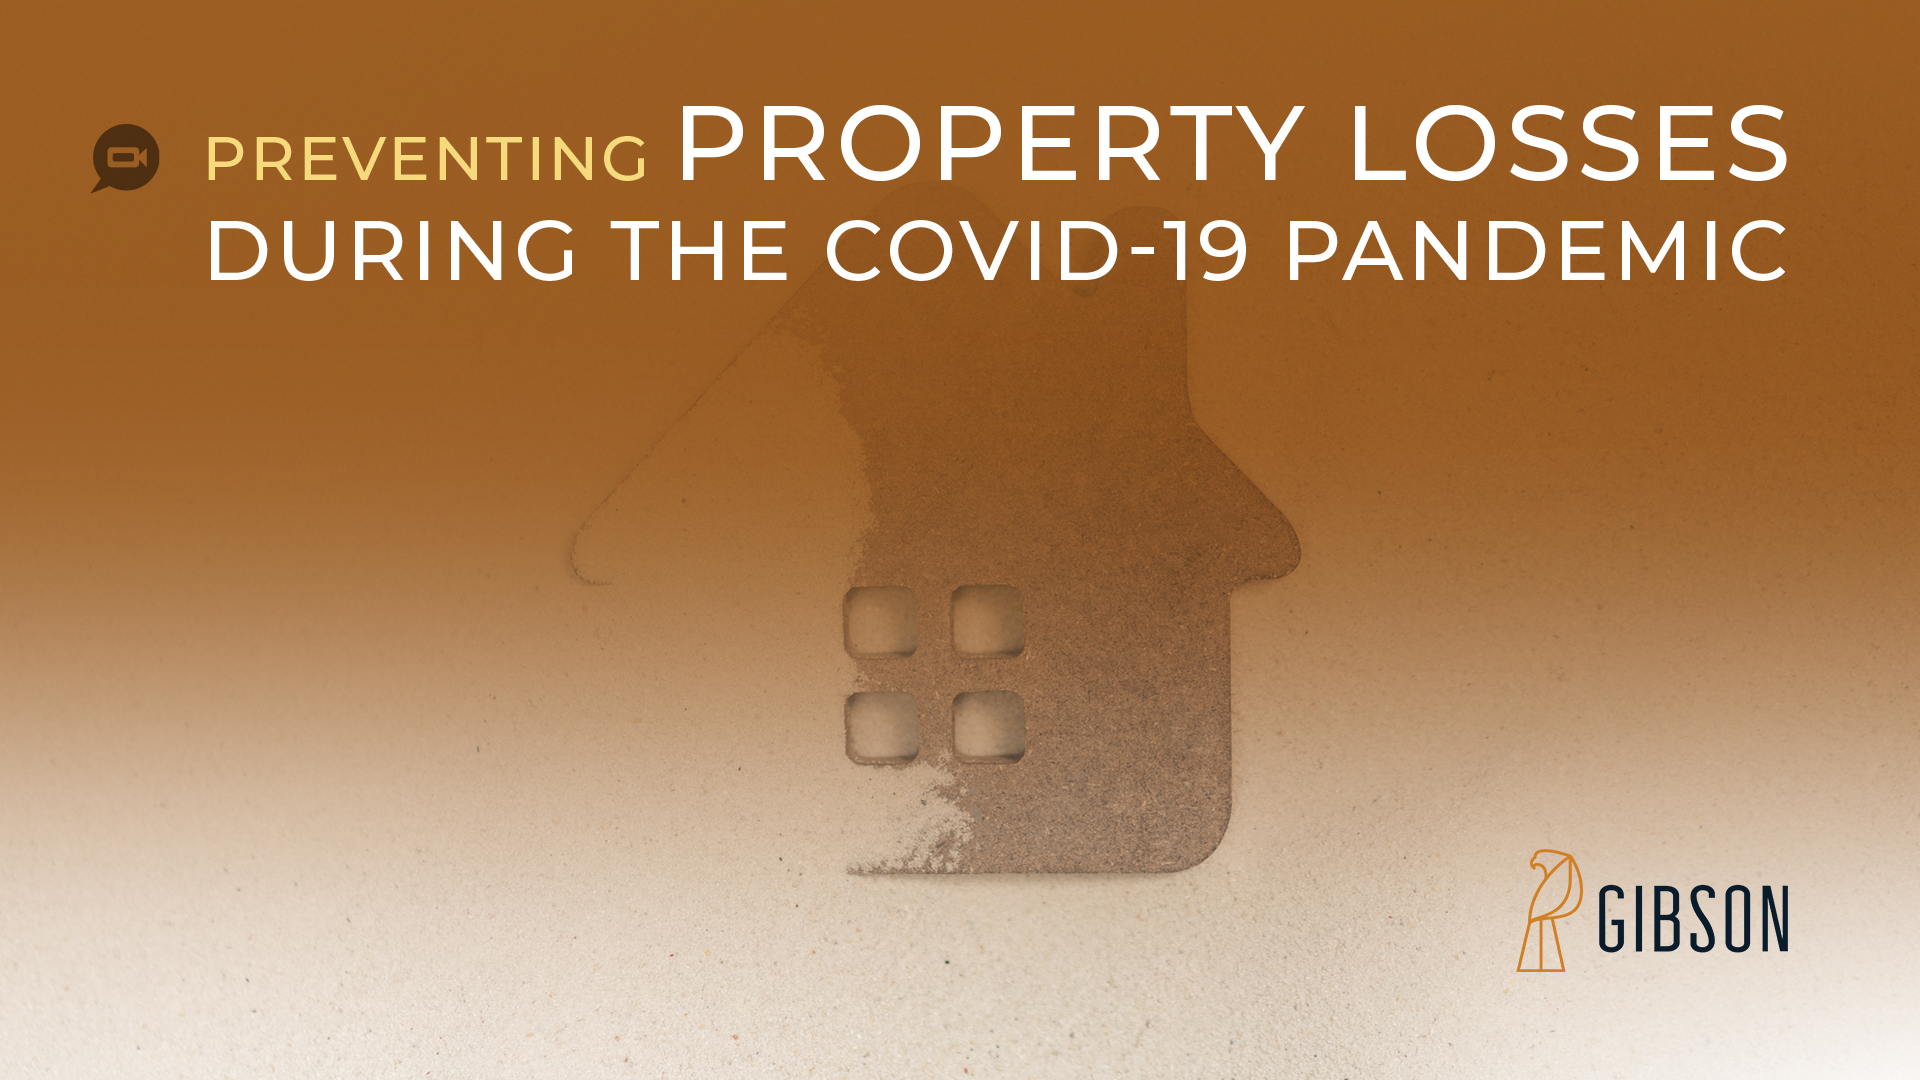 Preventing Property Losses During the COVID-19 Pandemic